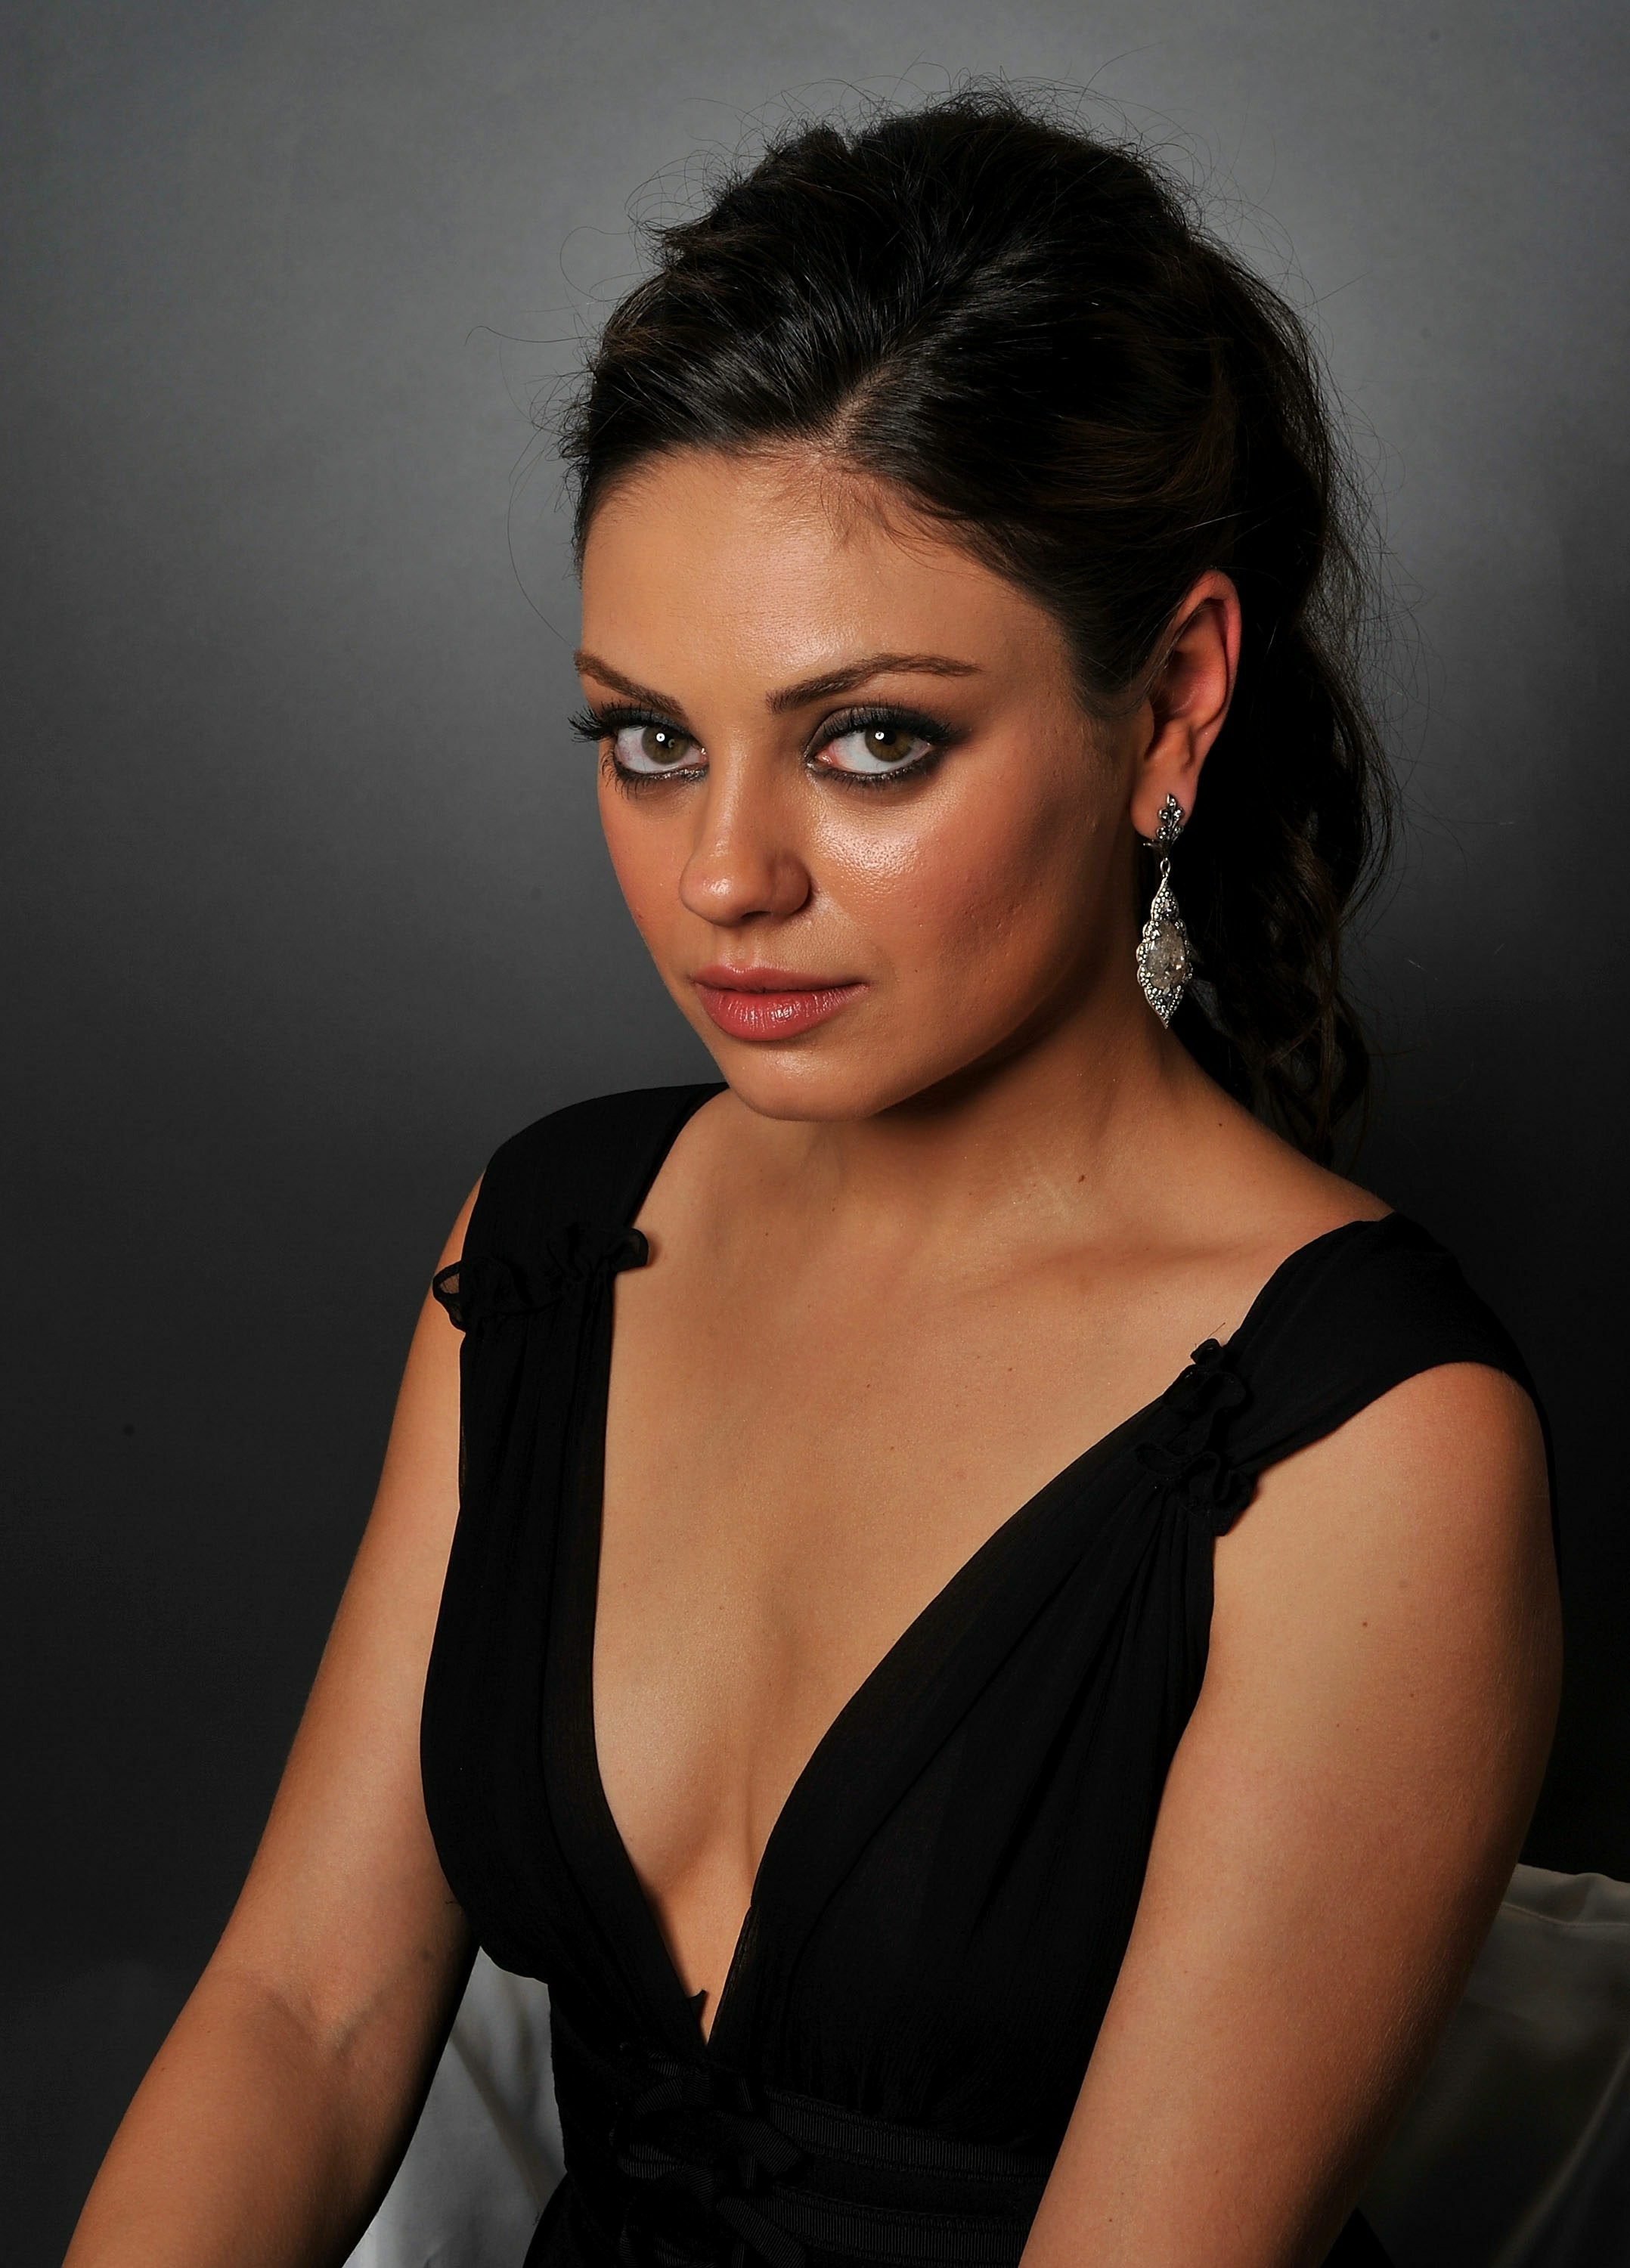 Mila Kunis Photo Gallery High Quality Pics Of Mila Kunis